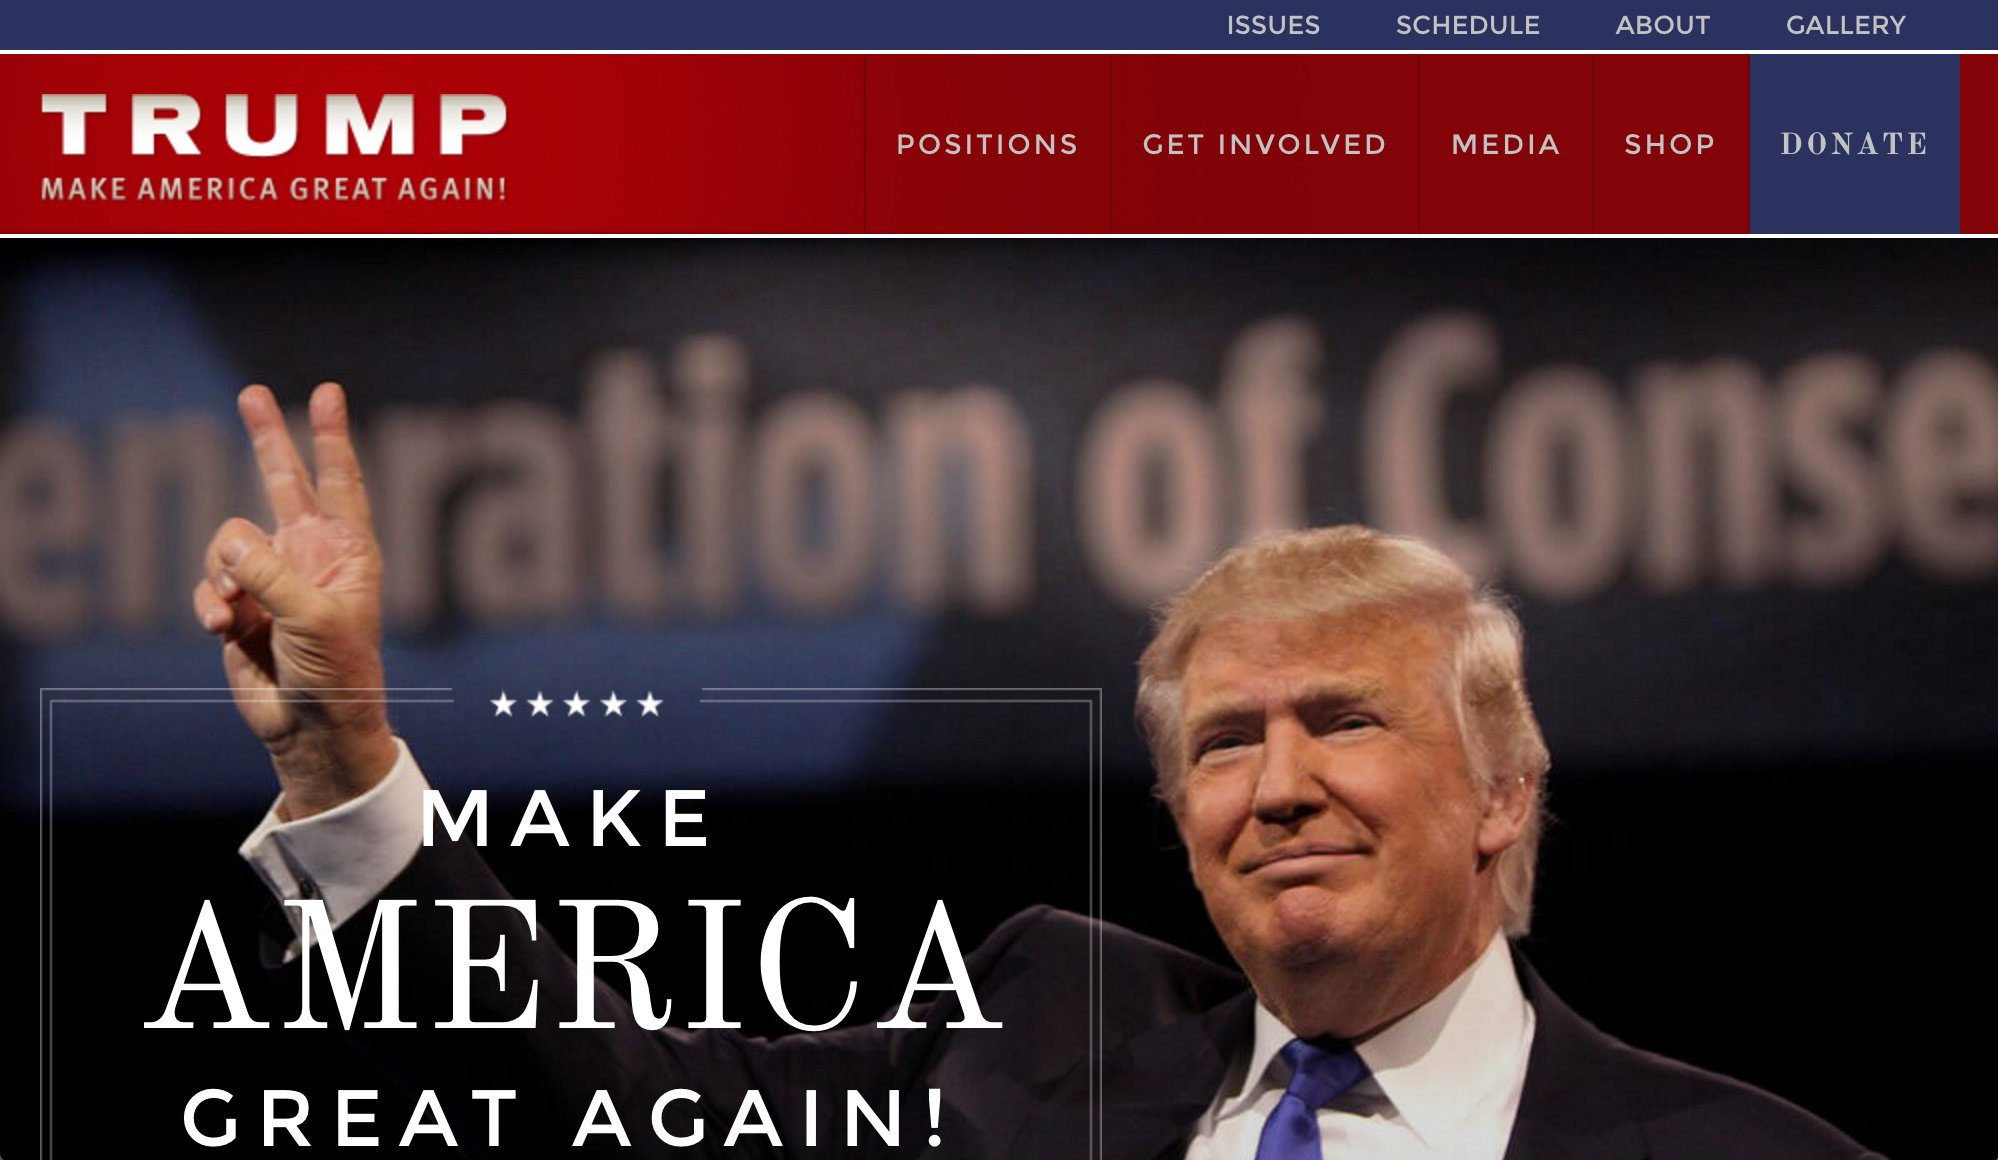 A few easy digital things Trump's team didn't do before announcing Pence: 1) Update Trump's website with the news. https://t.co/dOzlCTjAkA